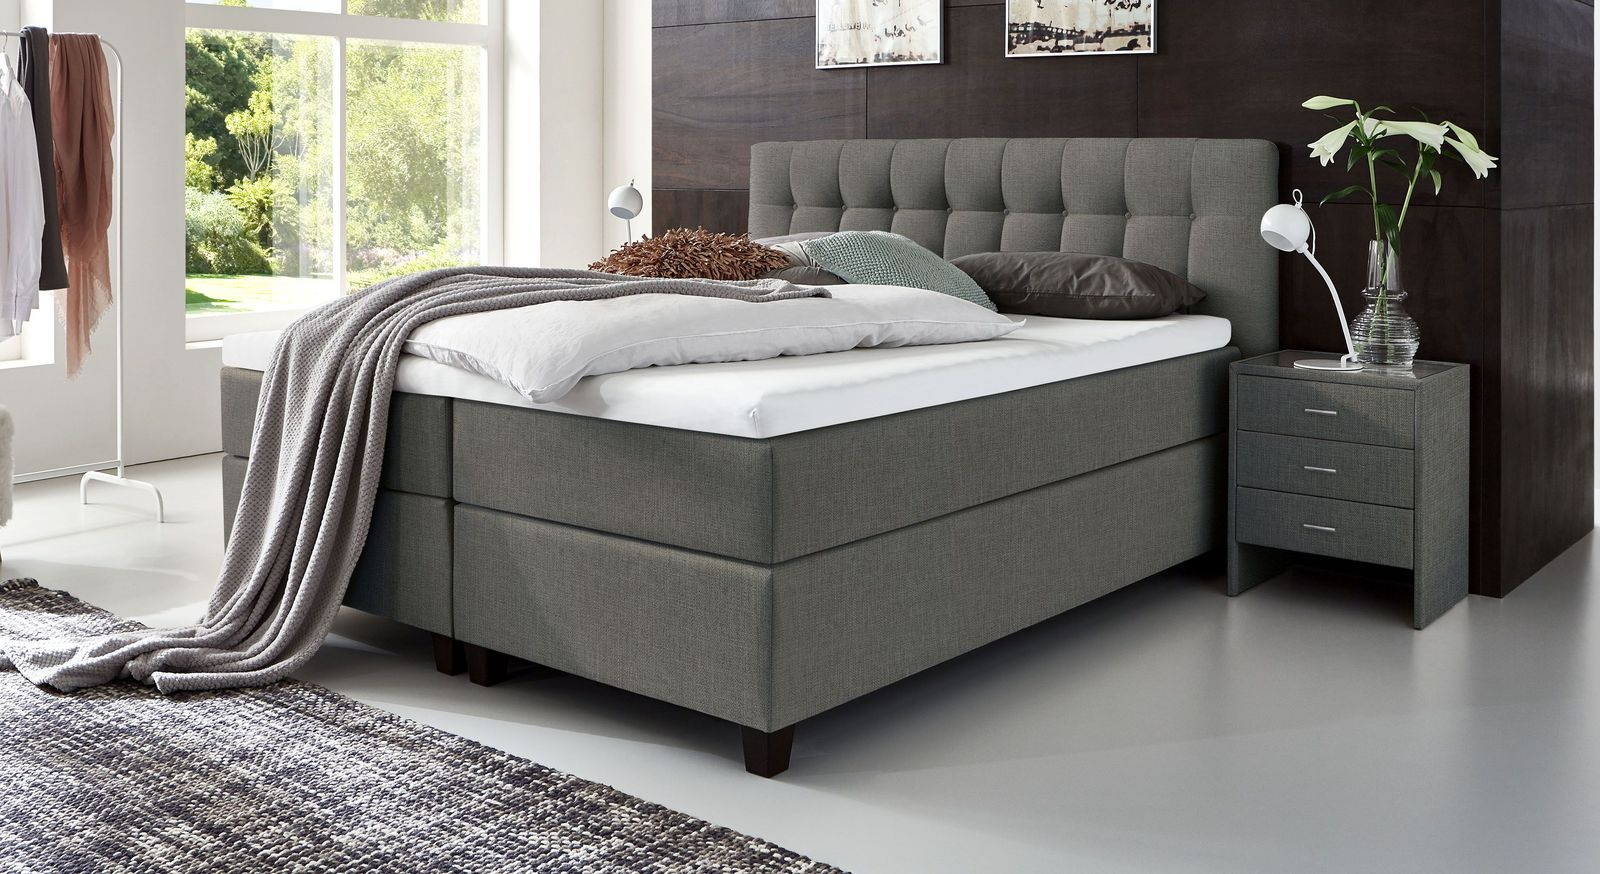 66 cm hohes Boxspringbett Luciano aus meliertem Webstoff in Grau